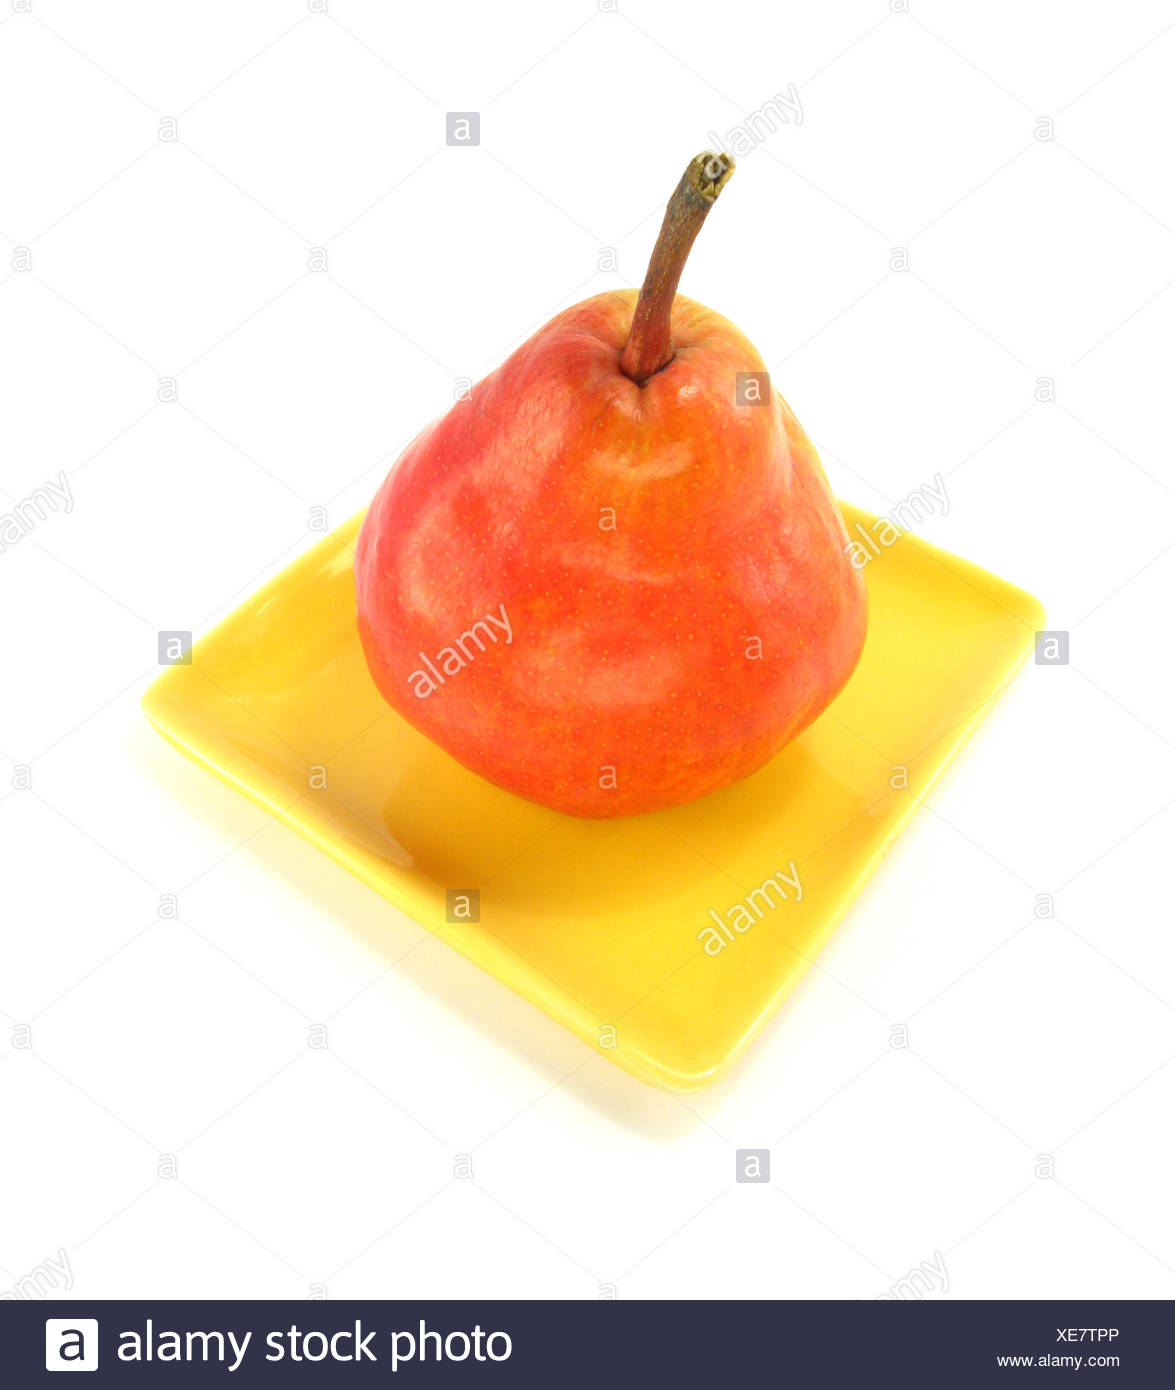 food aliment progenies fruits fruit diet pear bulb pears healthy food aliment Stock Photo